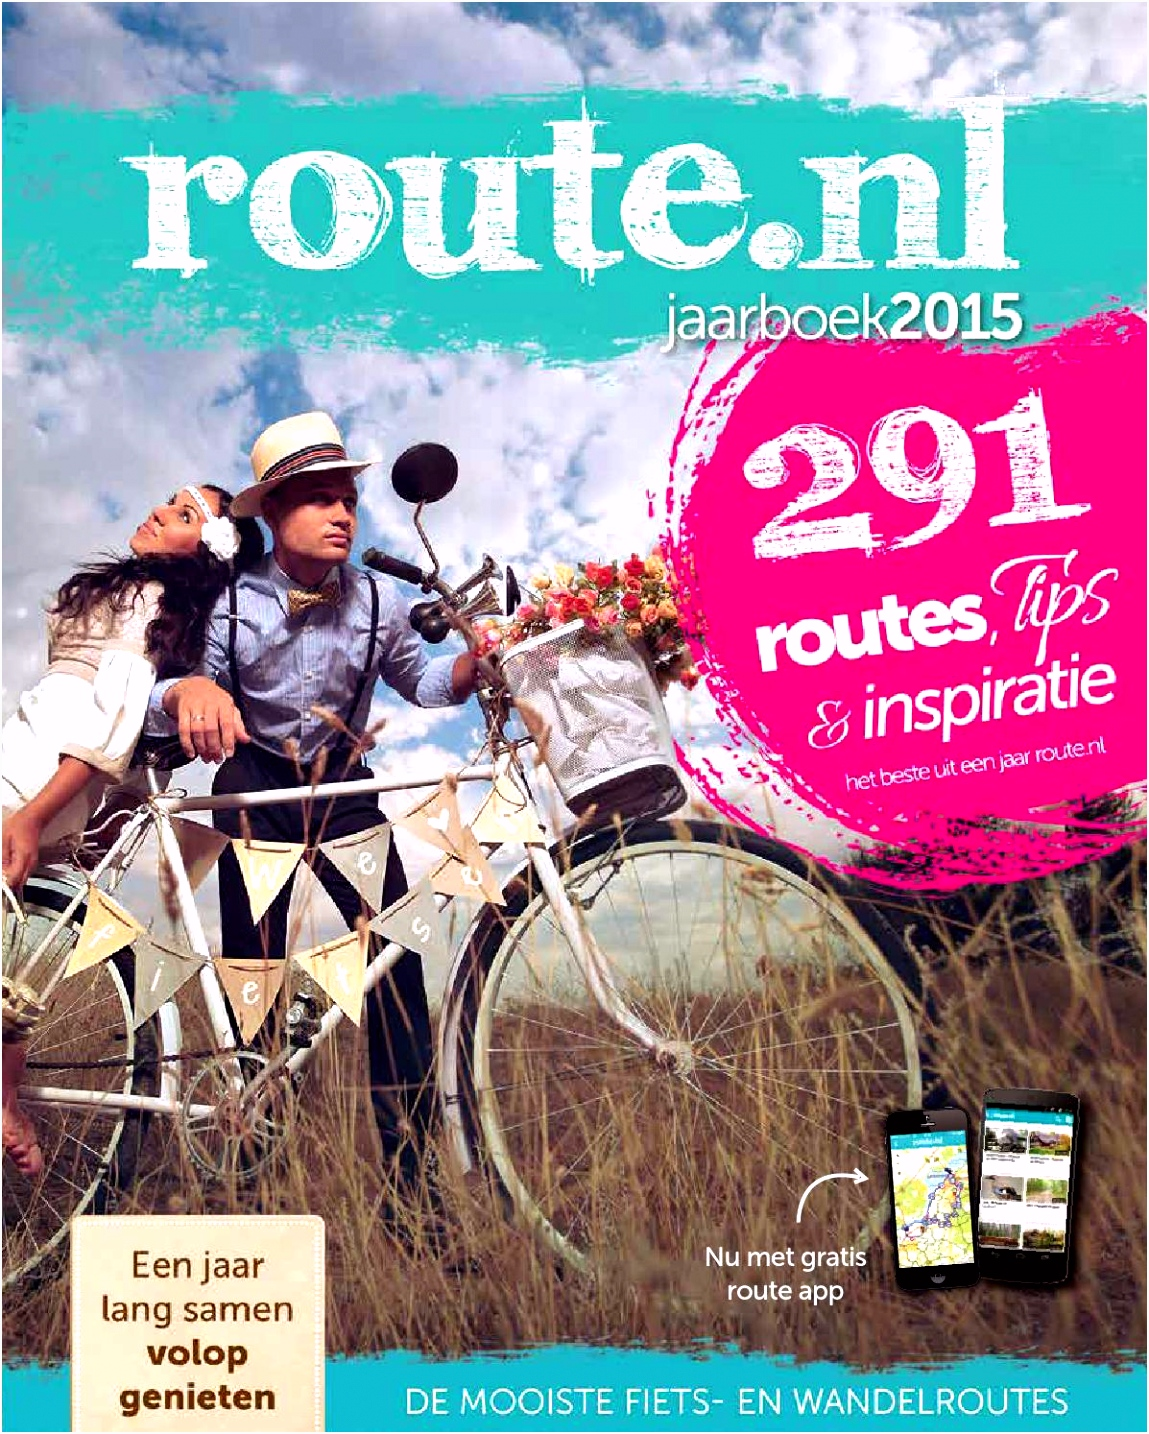 Ijsbeer In Nood Rangeractie Route Jaarboek 2015 by Route issuu X8mr64oab3 M4oeh4uetu